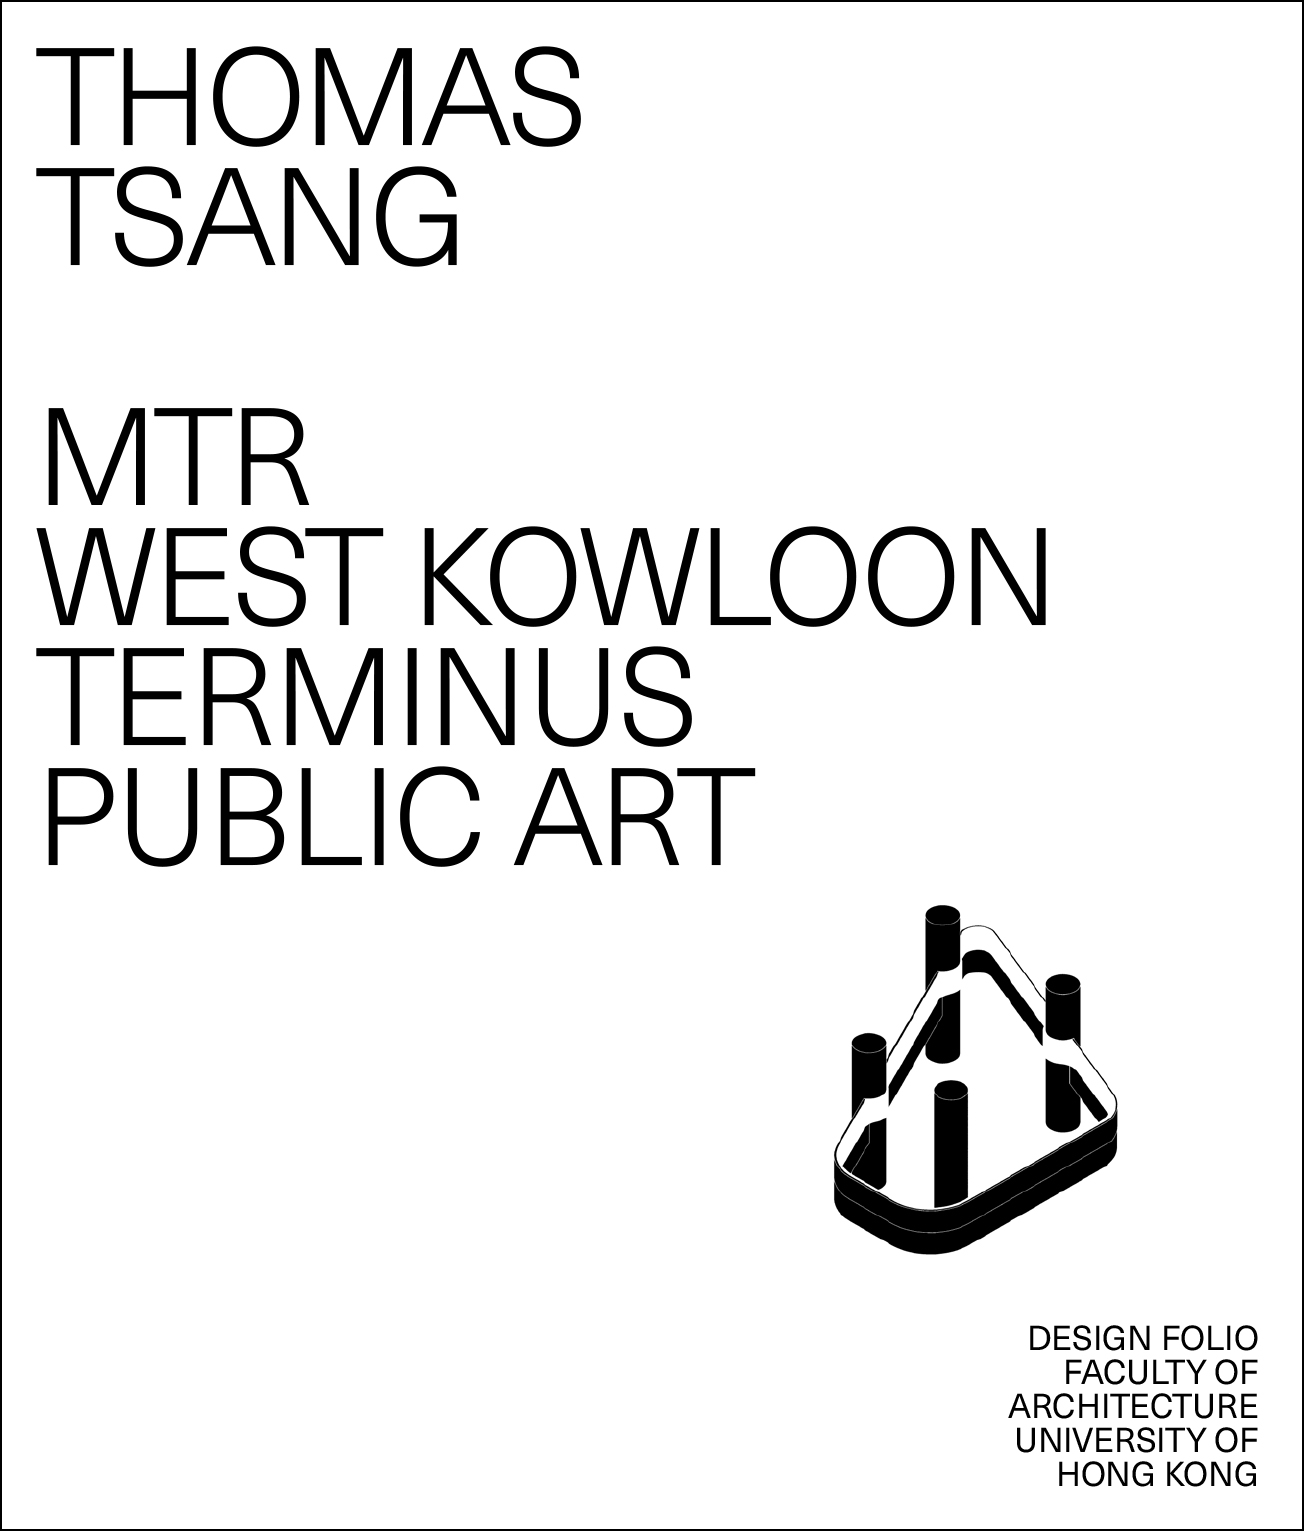 MTR West Kowloon Terminus Public Art